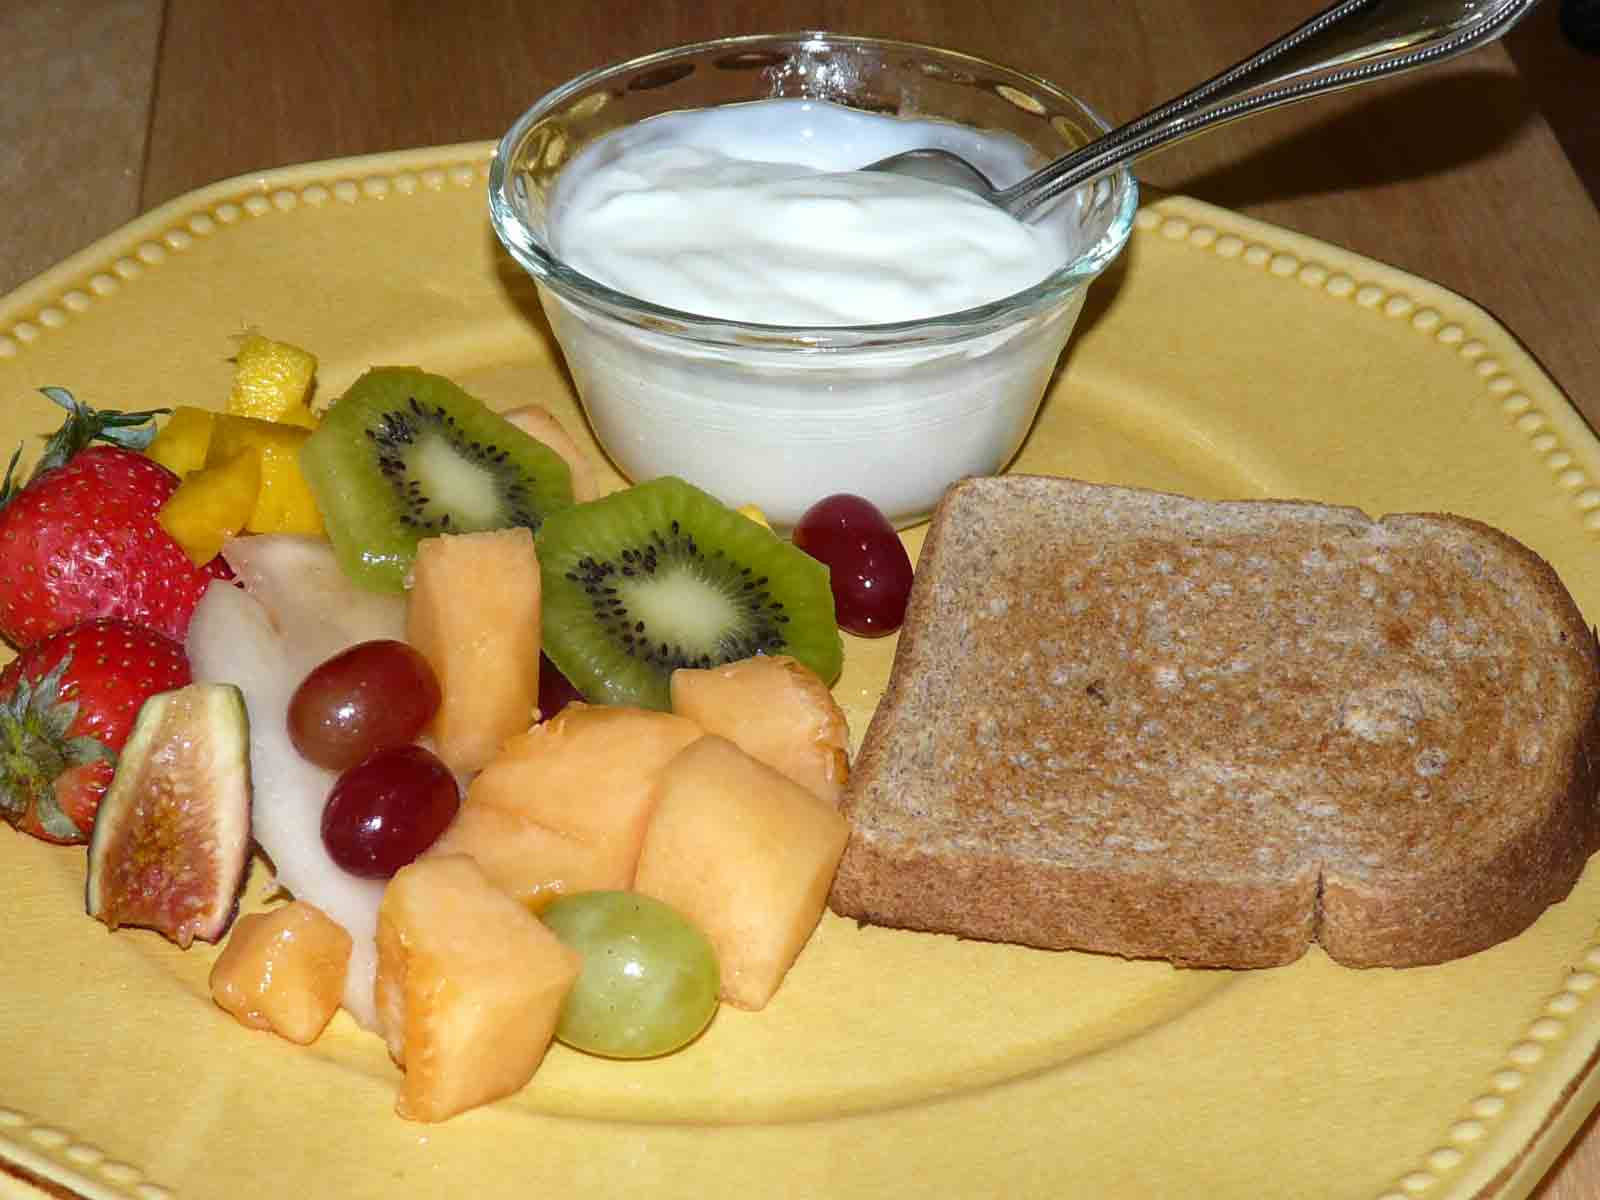 Healthy Food For Breakfast  About Healthy Food Pyramid Racipes for Kids Plate